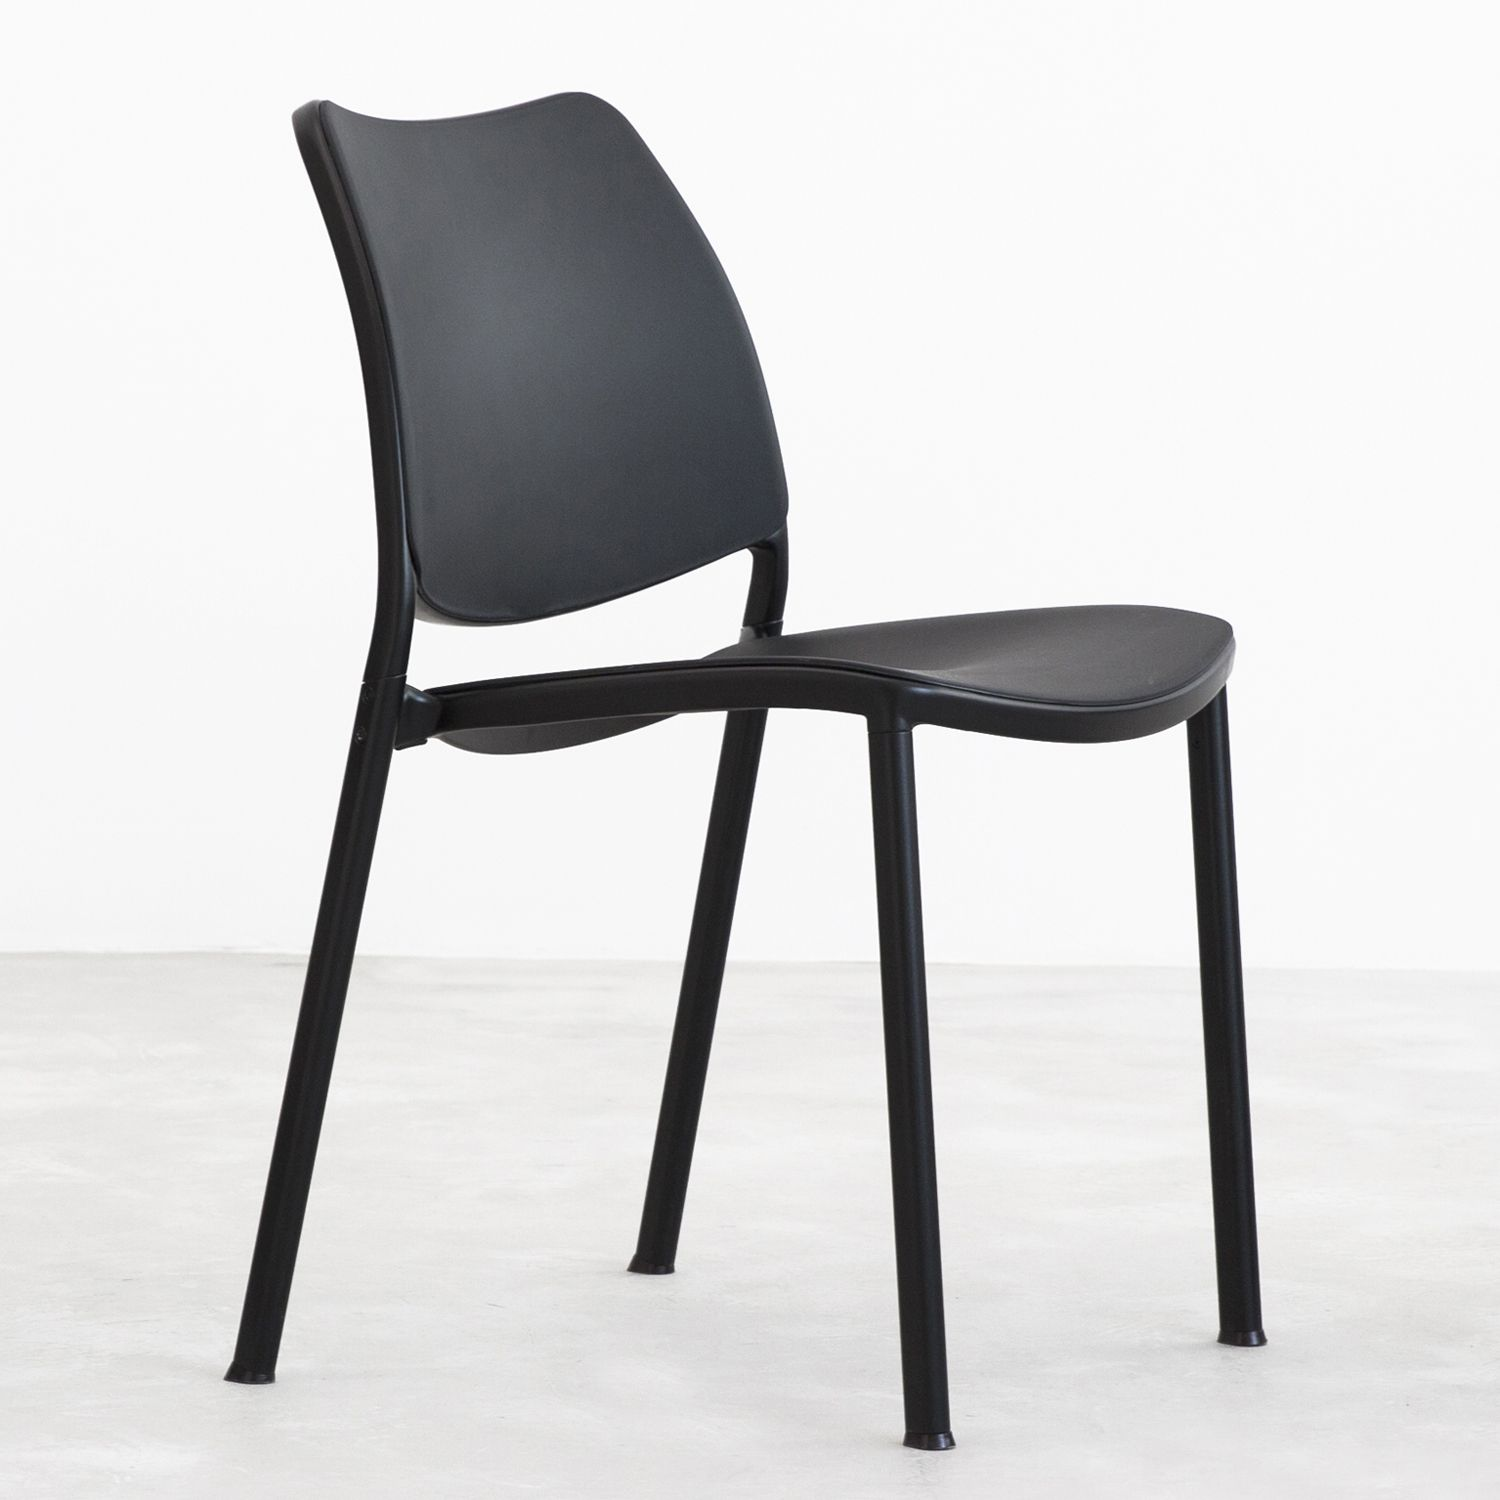 STUA Gas Chair